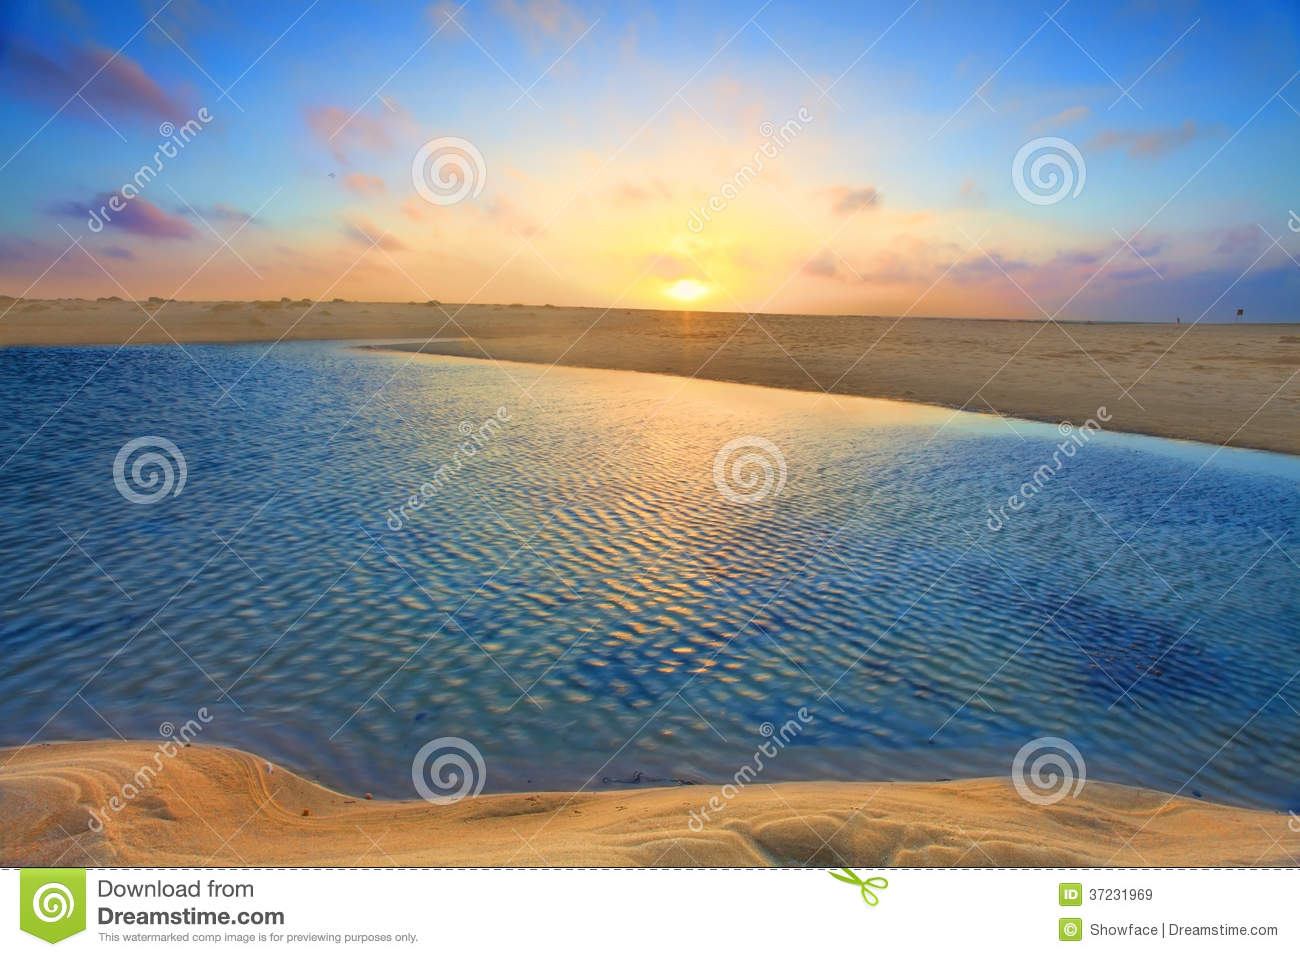 Sunrise over golden sands and azure waters